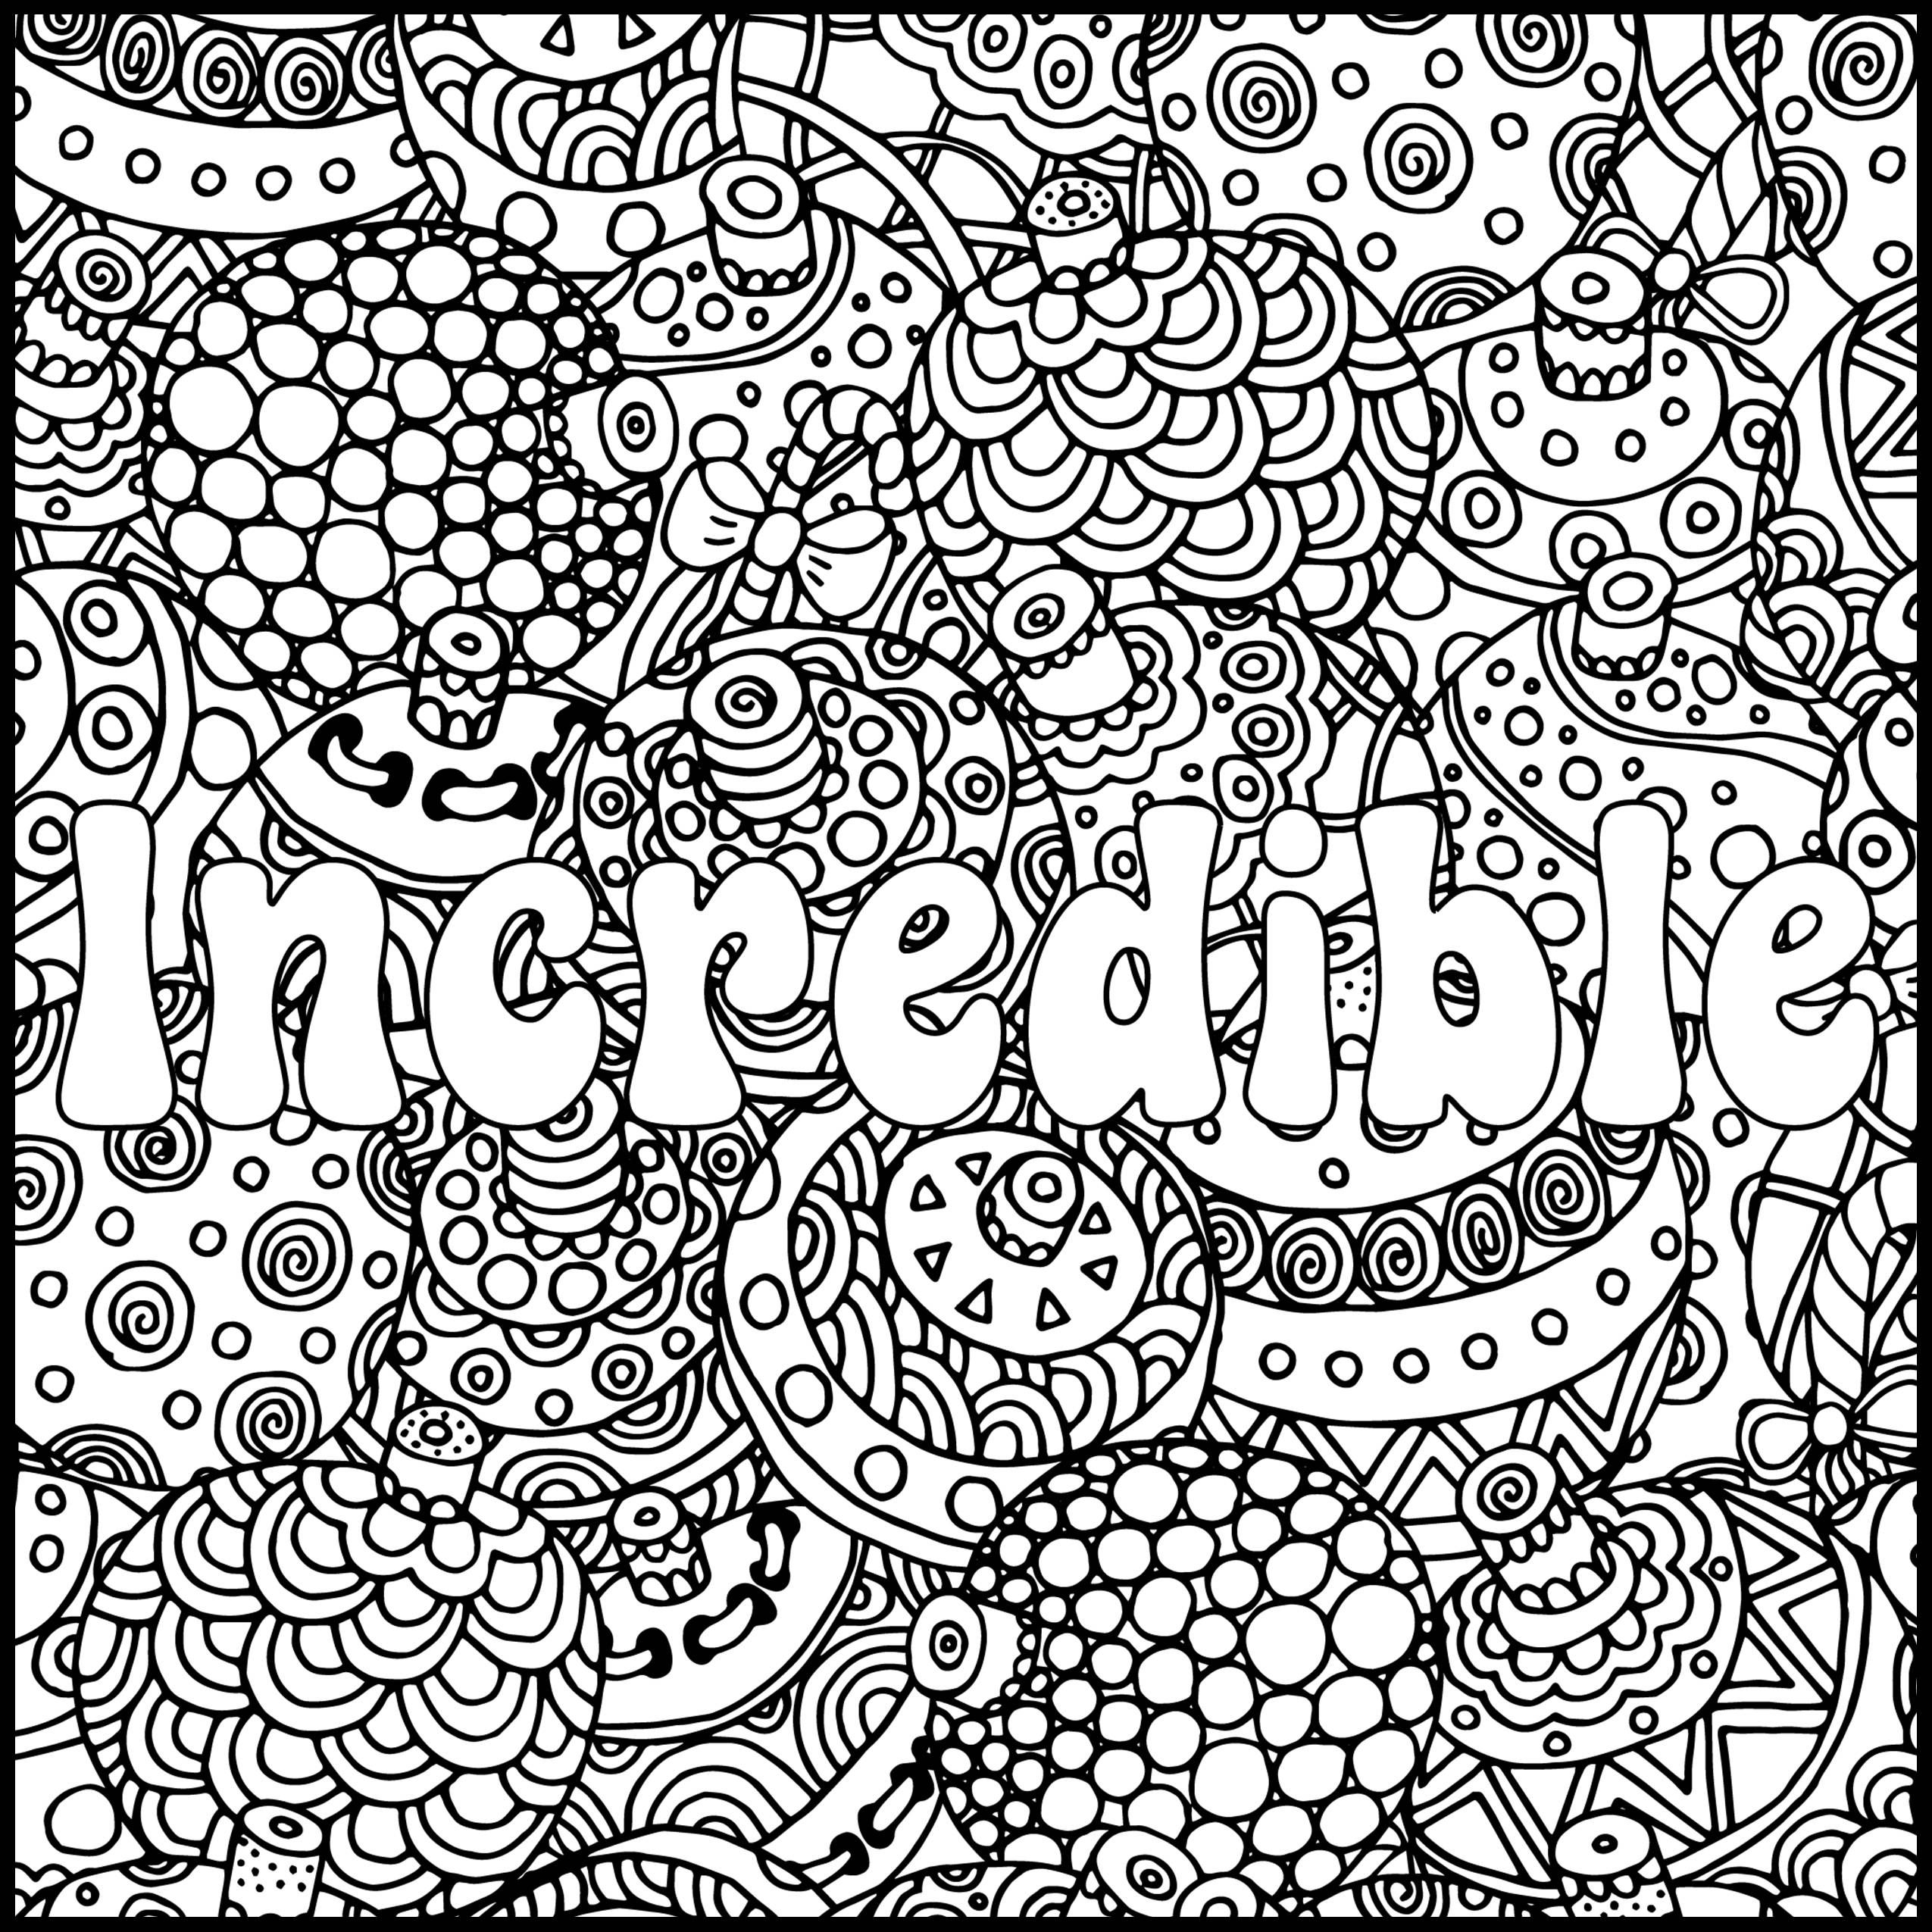 positive word coloring page incredible positive kolor me